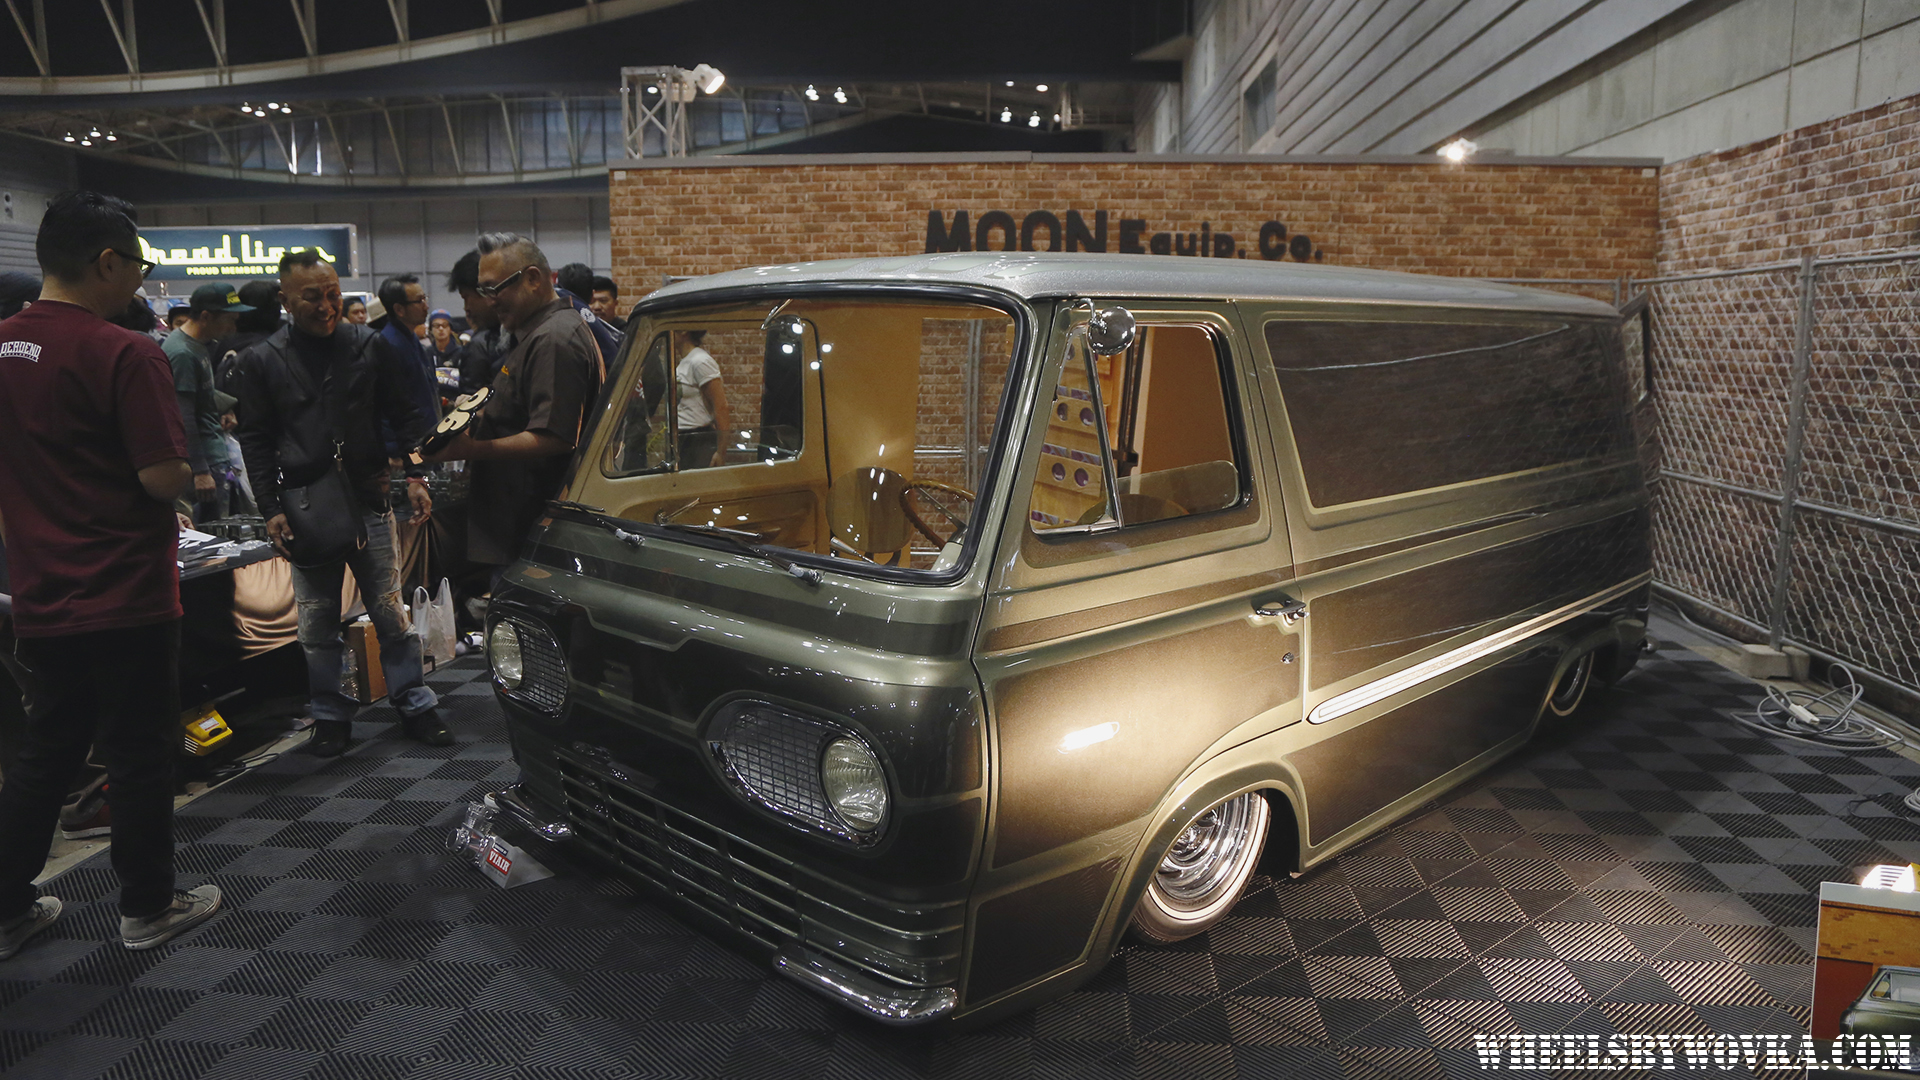 mooneyes-yokohama-hot-rod-custom-show-cars-2017-26